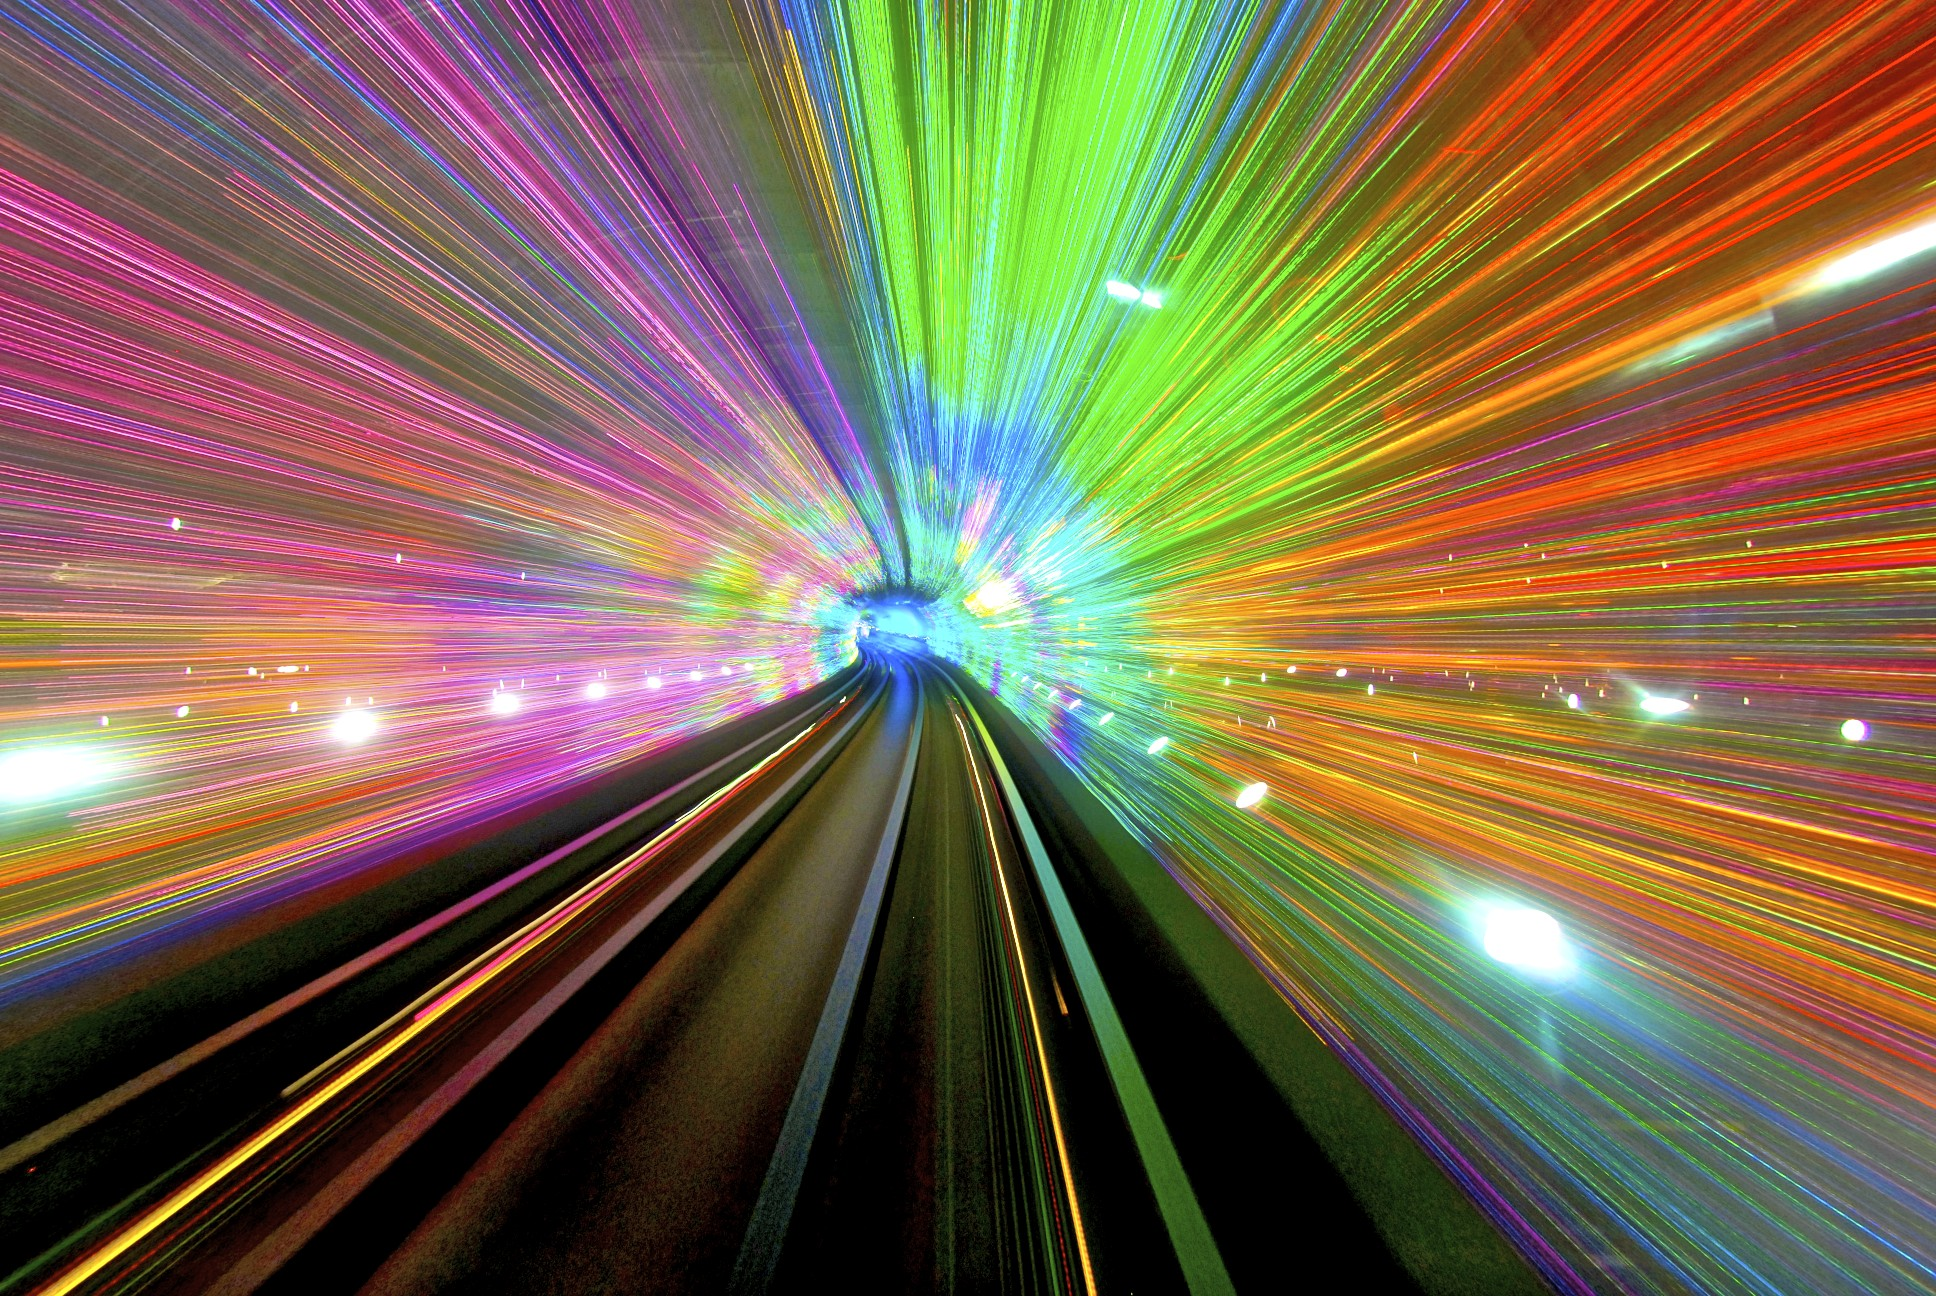 The Bund Sightseeing Tunnel may not officially be a subway. However, it is a train trip well worth taking. To be exact, the Bund is a tunnel that runs underneath the Pu river.